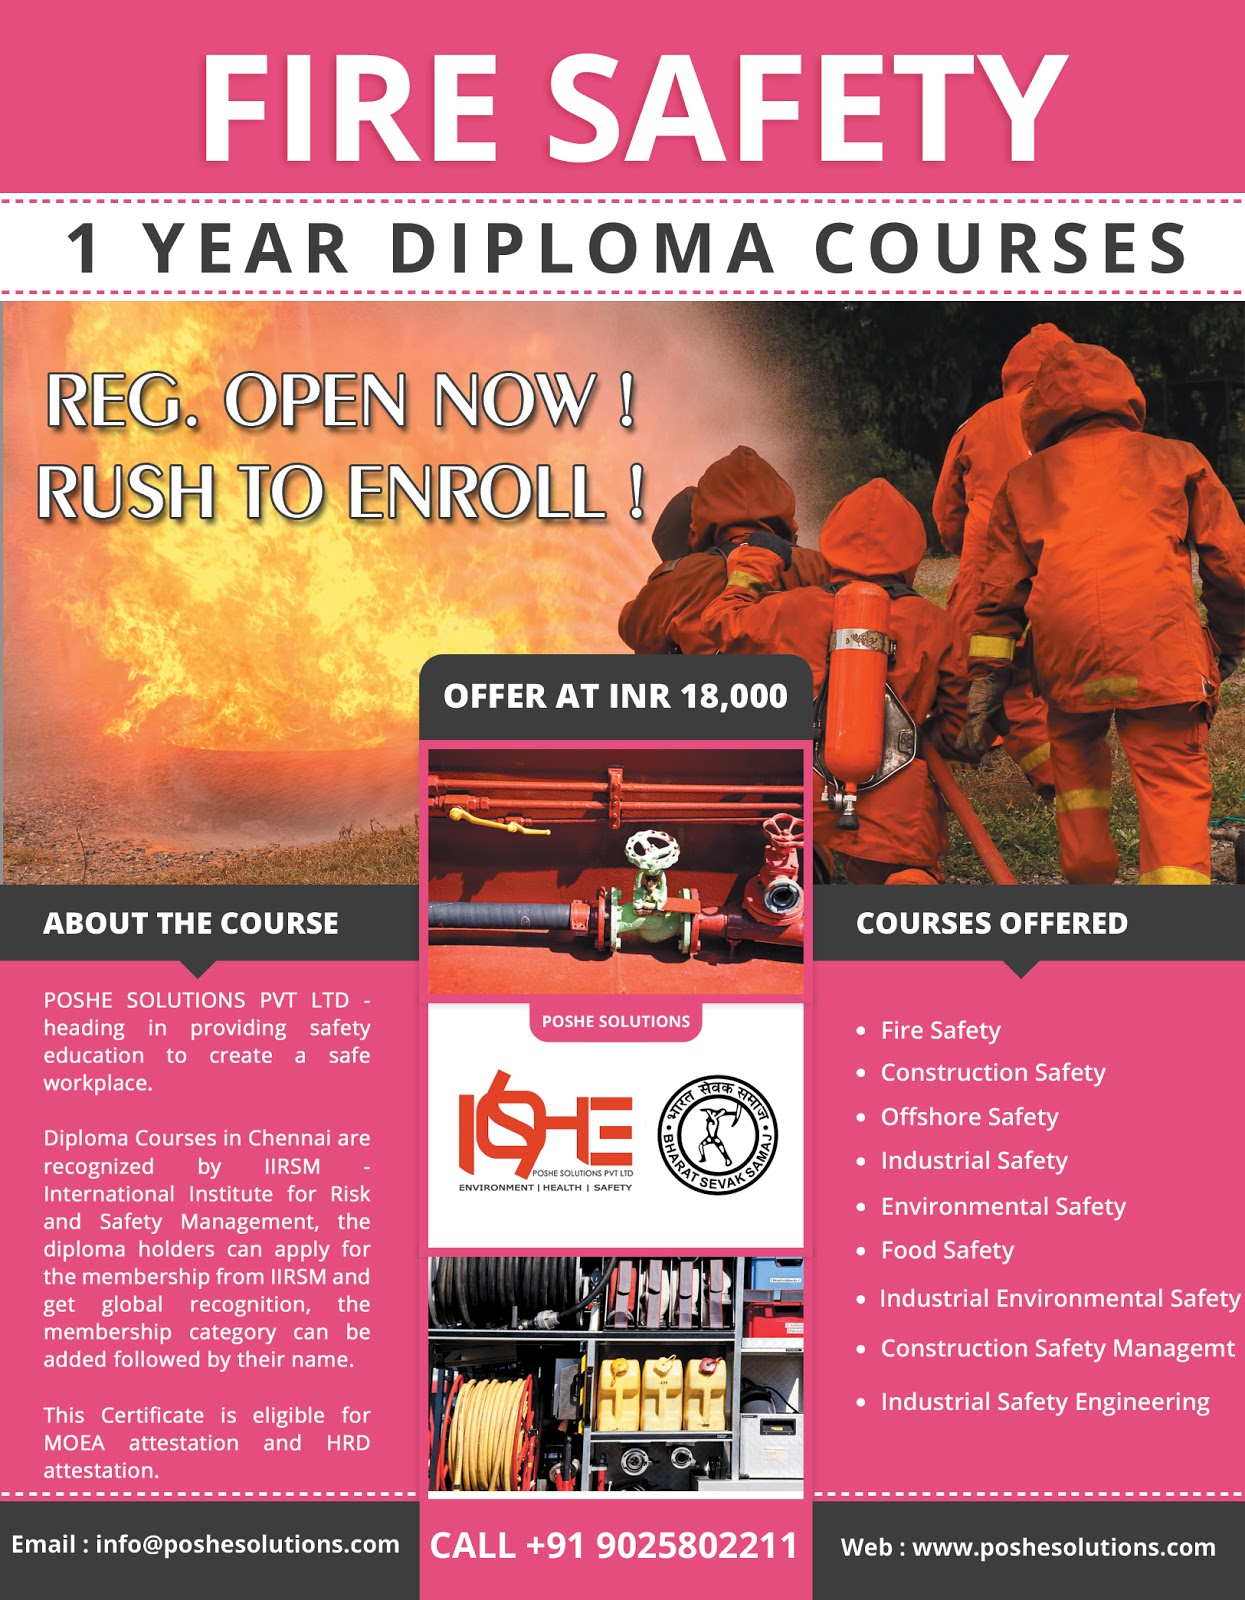 Fire safety training in chennai fire safety courses in chennai poshe xflitez Gallery